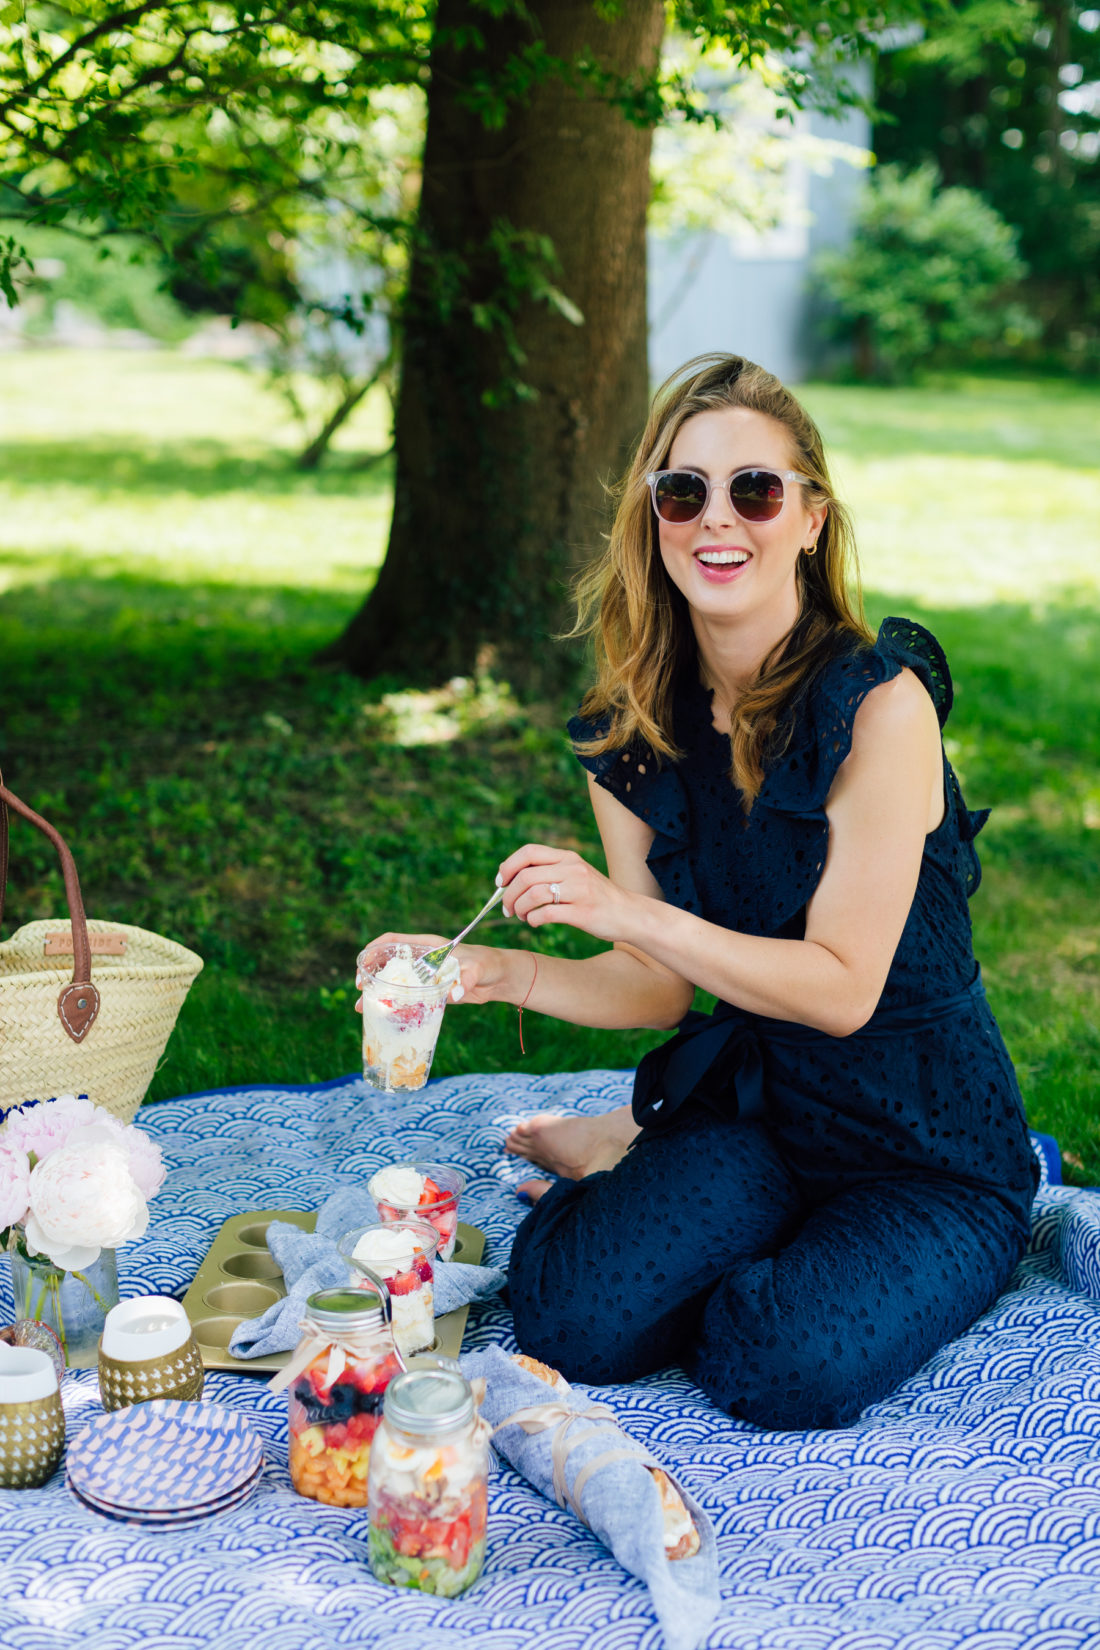 Eva Amurri Martino enjoys a picnic in her backyard